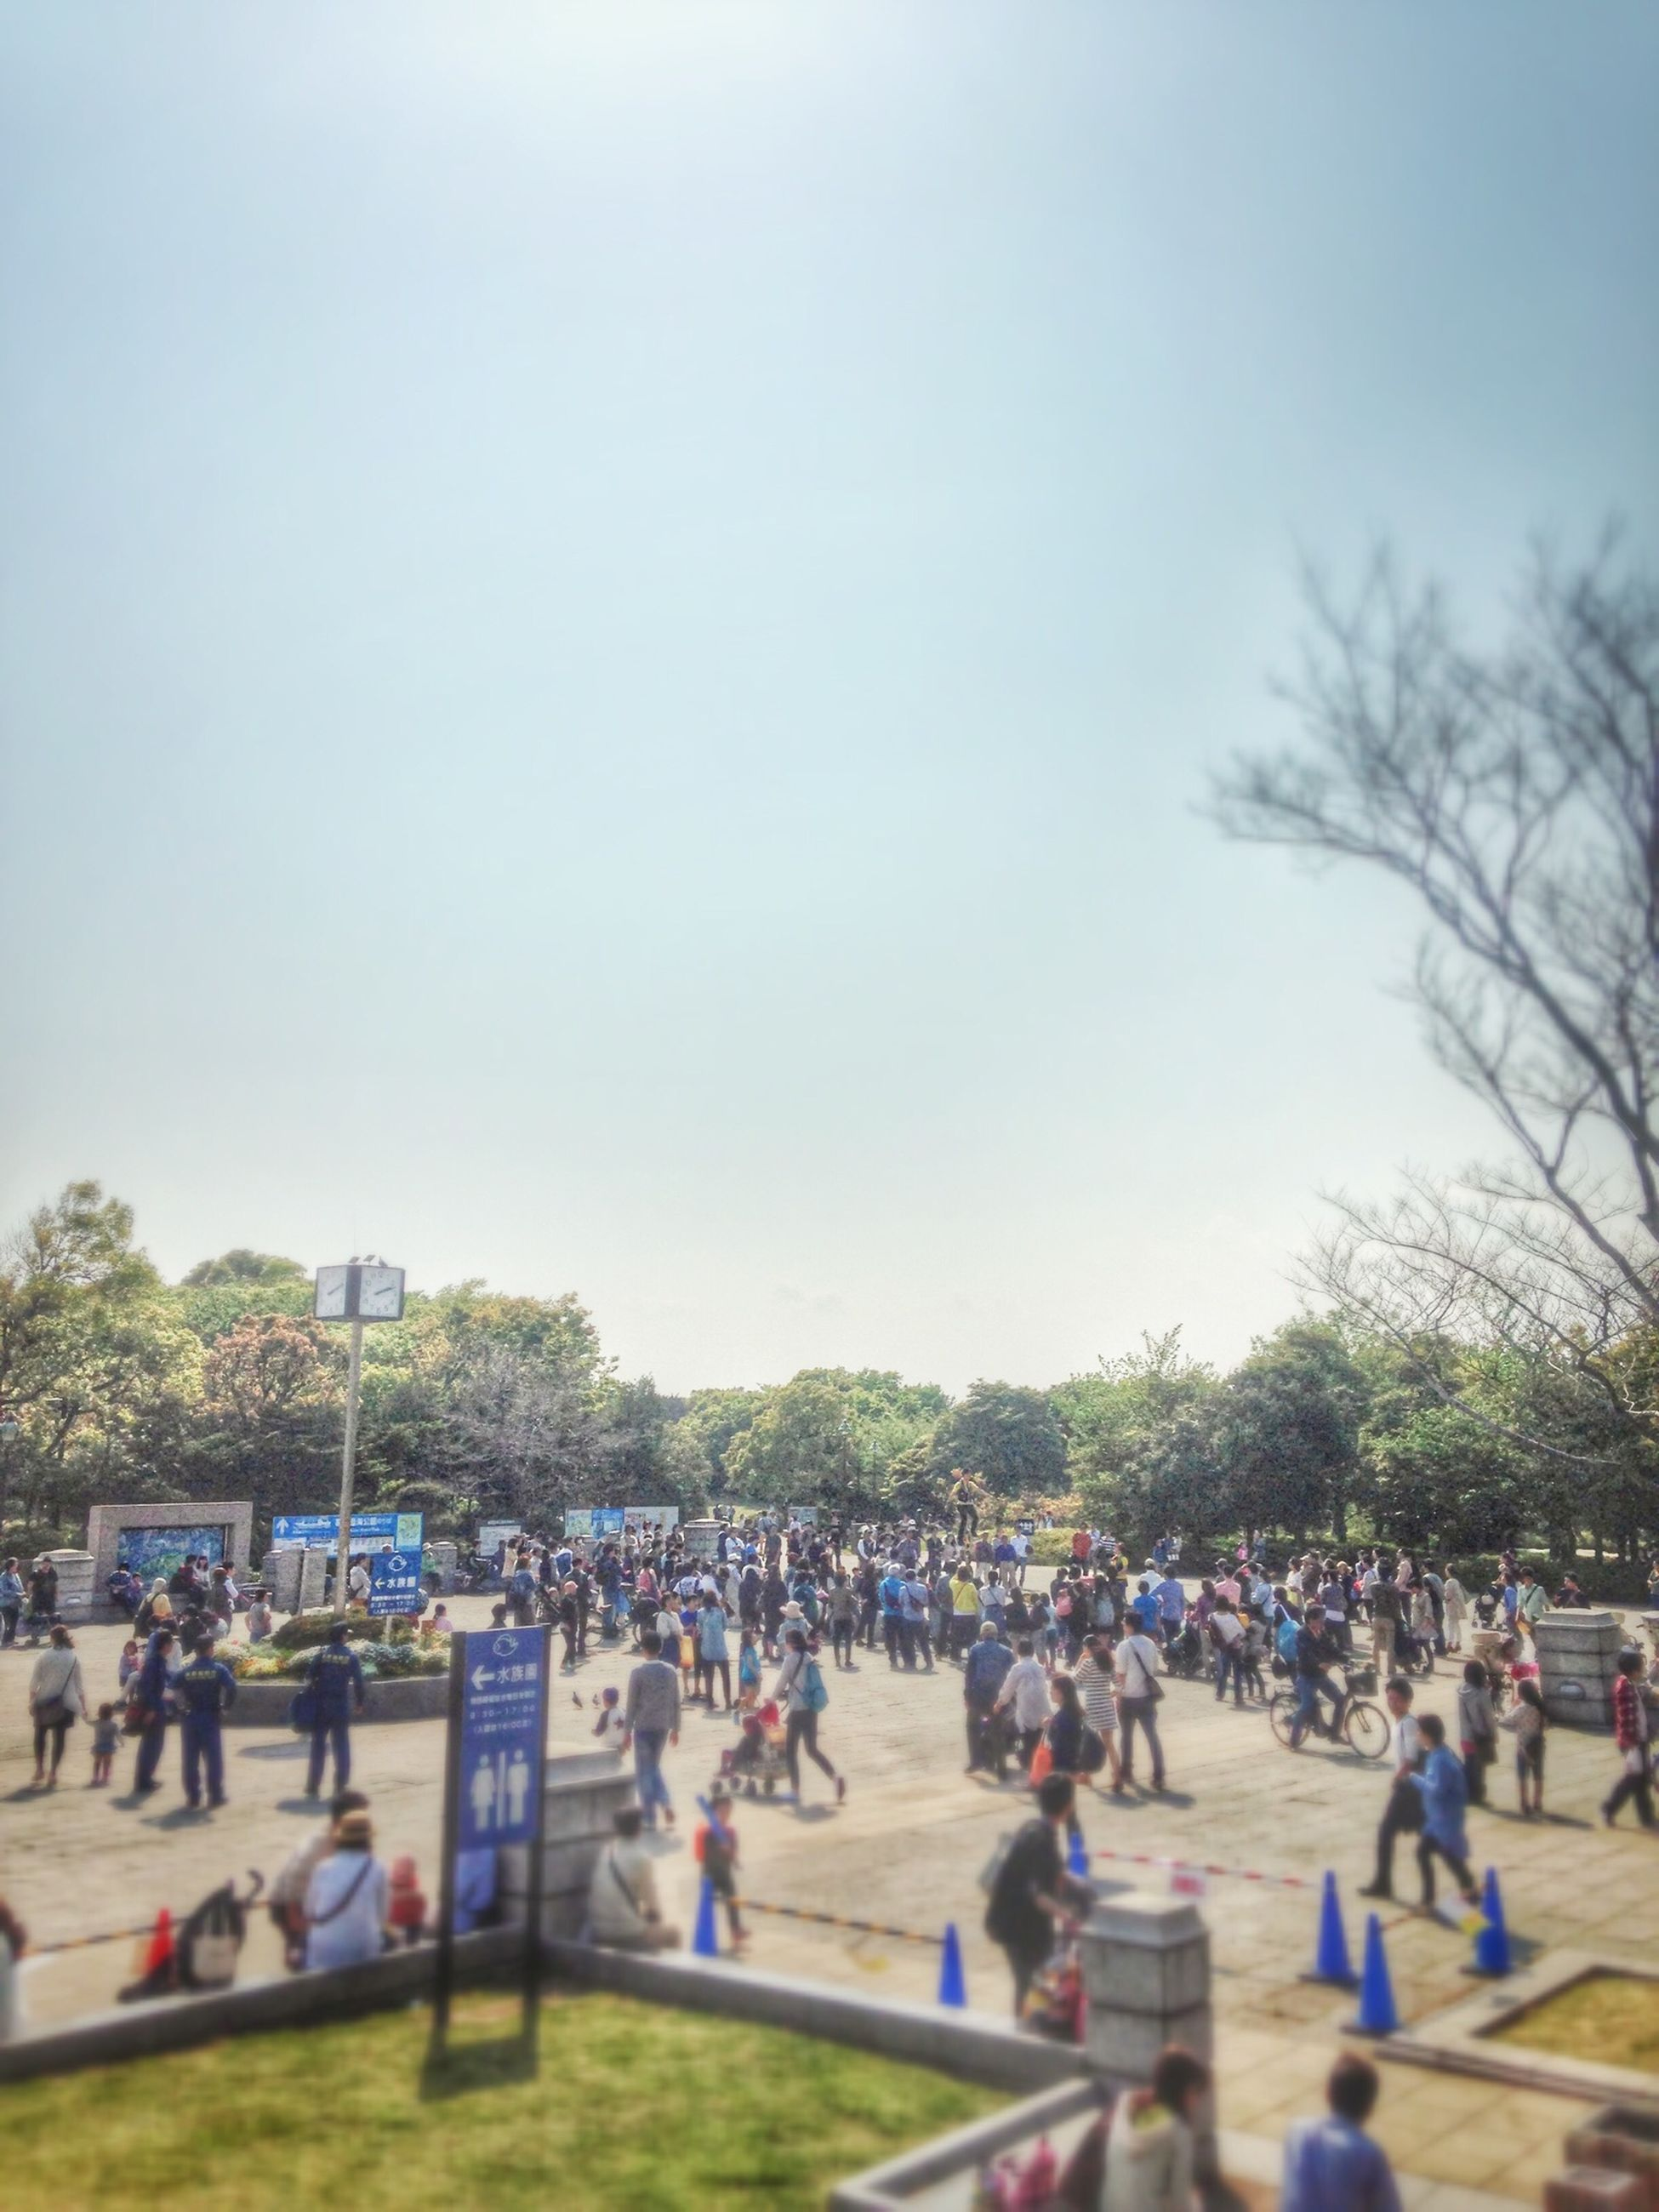 large group of people, tree, person, men, lifestyles, leisure activity, crowd, mixed age range, clear sky, copy space, park - man made space, enjoyment, sky, day, outdoors, city life, relaxation, tourist, togetherness